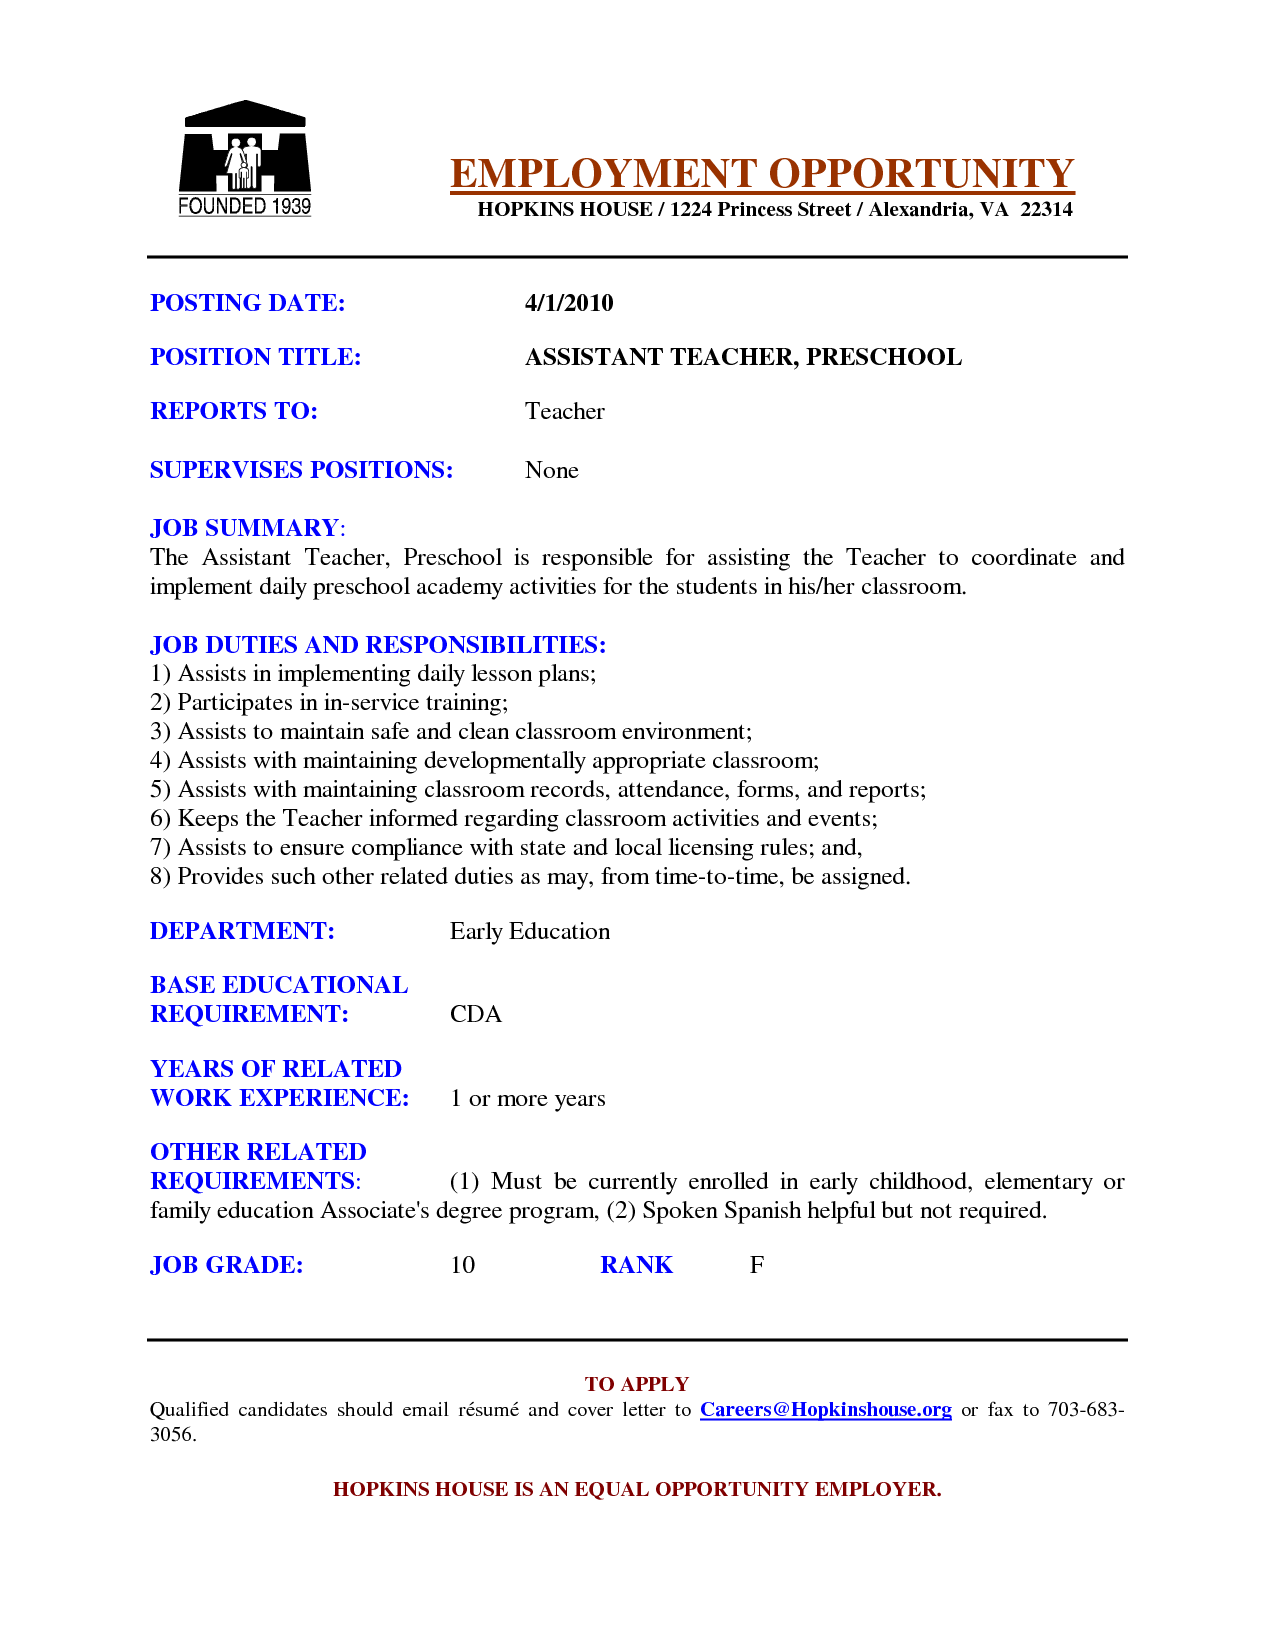 preschool assistant teacher resume examples google search - Resume Template For Early Childhood Teacher